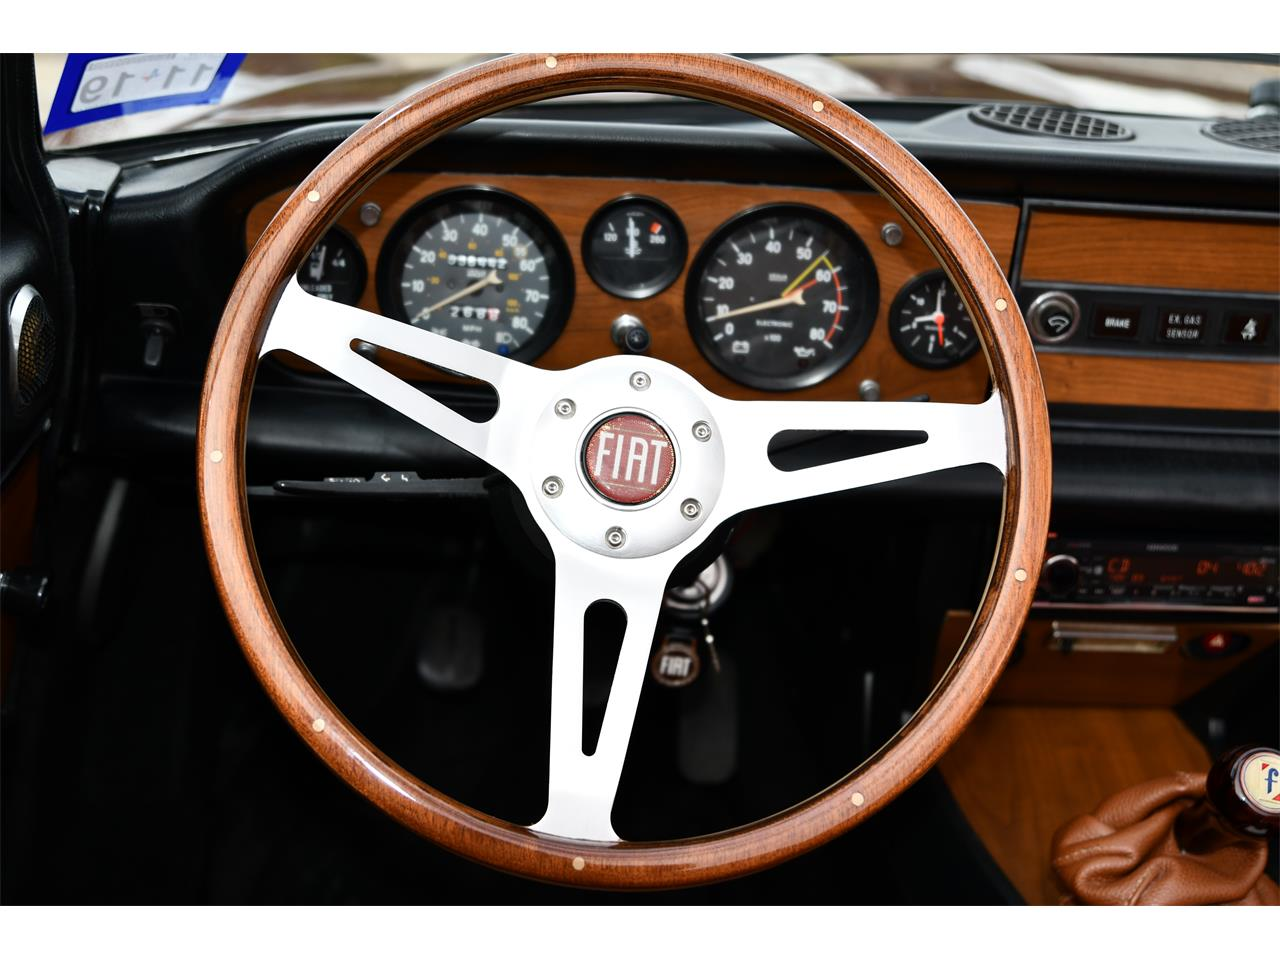 1982 Fiat Spider for sale in Spicewood, TX – photo 14